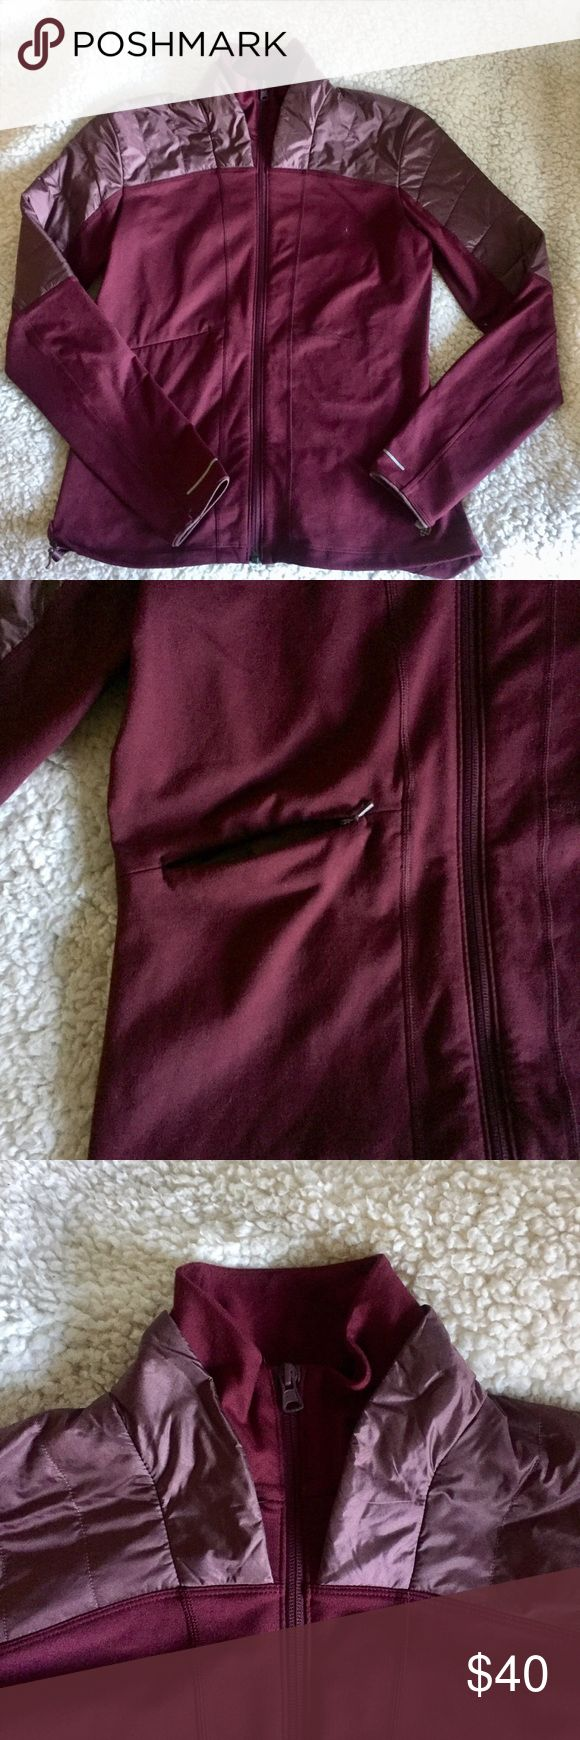 Mountain Hardwear Plum Insulated Zip Up Jacket Beautiful plum/burgundy Mountain Hardwear jacket. Perfect for layering in this cold weather or for exercising in the morning or at night :-) The jacket features a reflective mountain hard wear logo at the bottom left side of the front and the nape of the neck as well as insulation inside the jacket.  Only worn about two times and was purchased new last year. Open to negotiation ❄️🌹 Mountain Hardwear Jackets & Coats